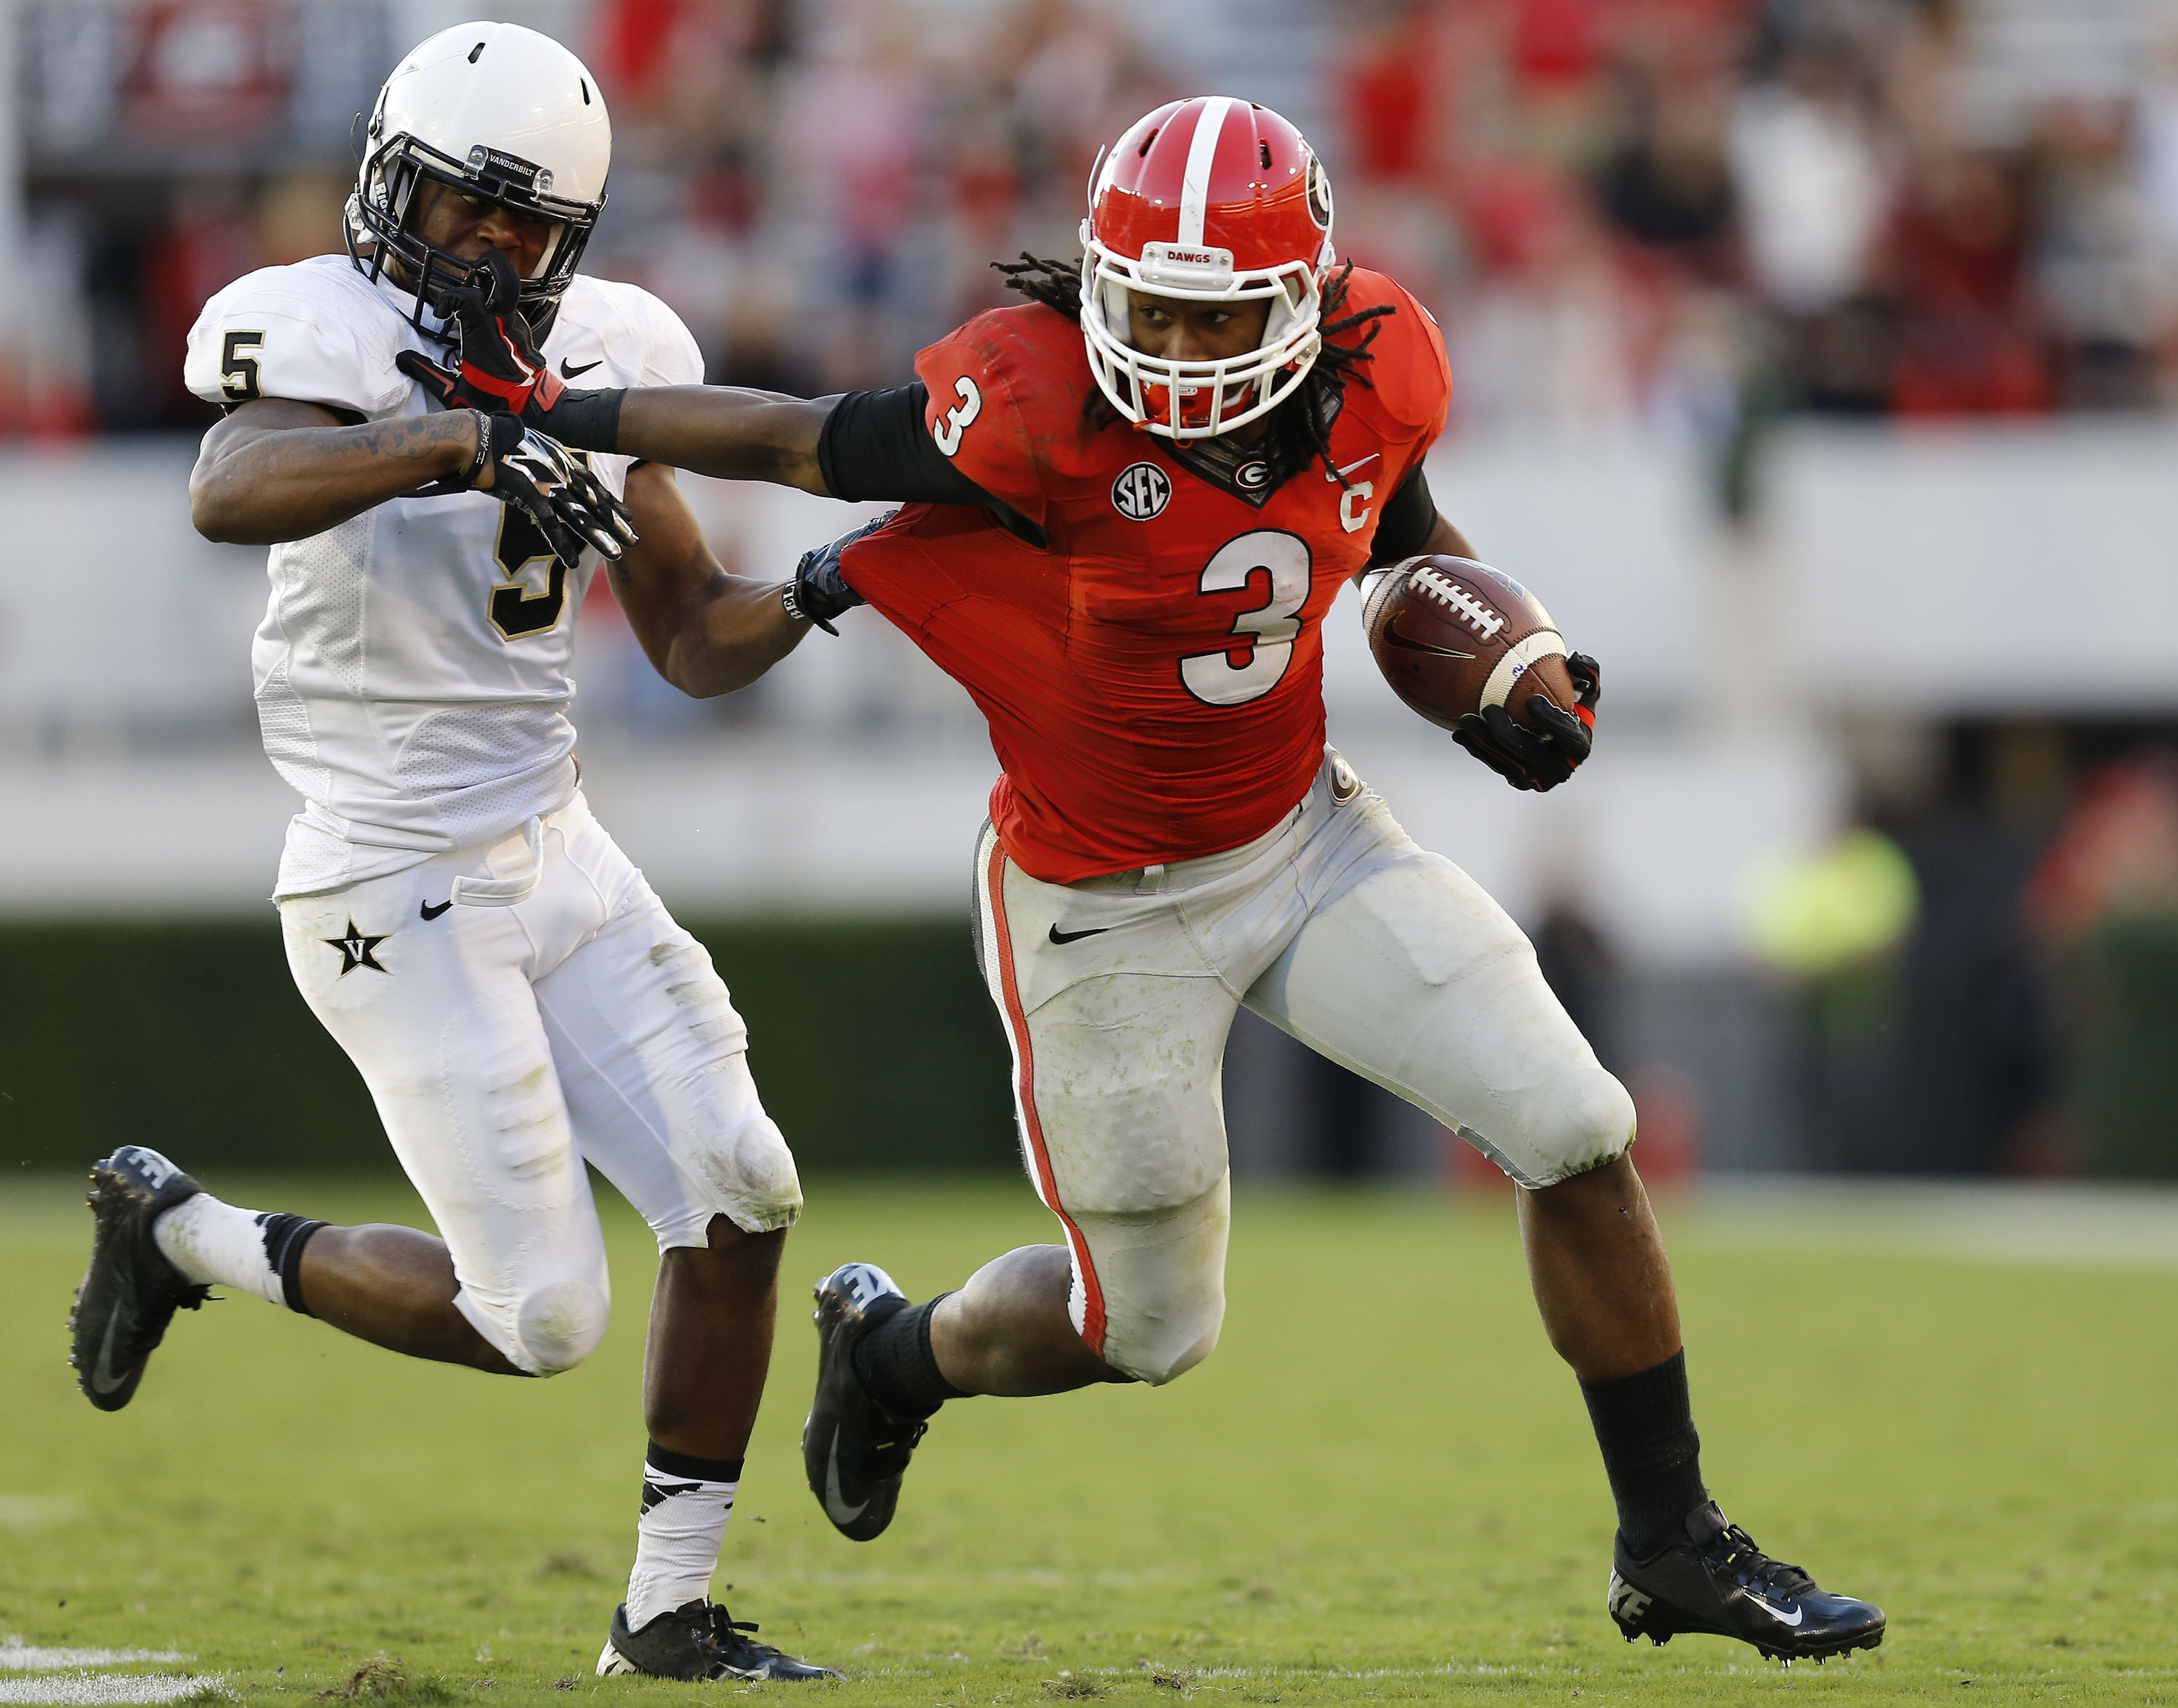 Georgia running back Todd Gurley (right) stiff-arms Torren McGaster of Vanderbilt on October 4, 2014 in Athens, Georgia.